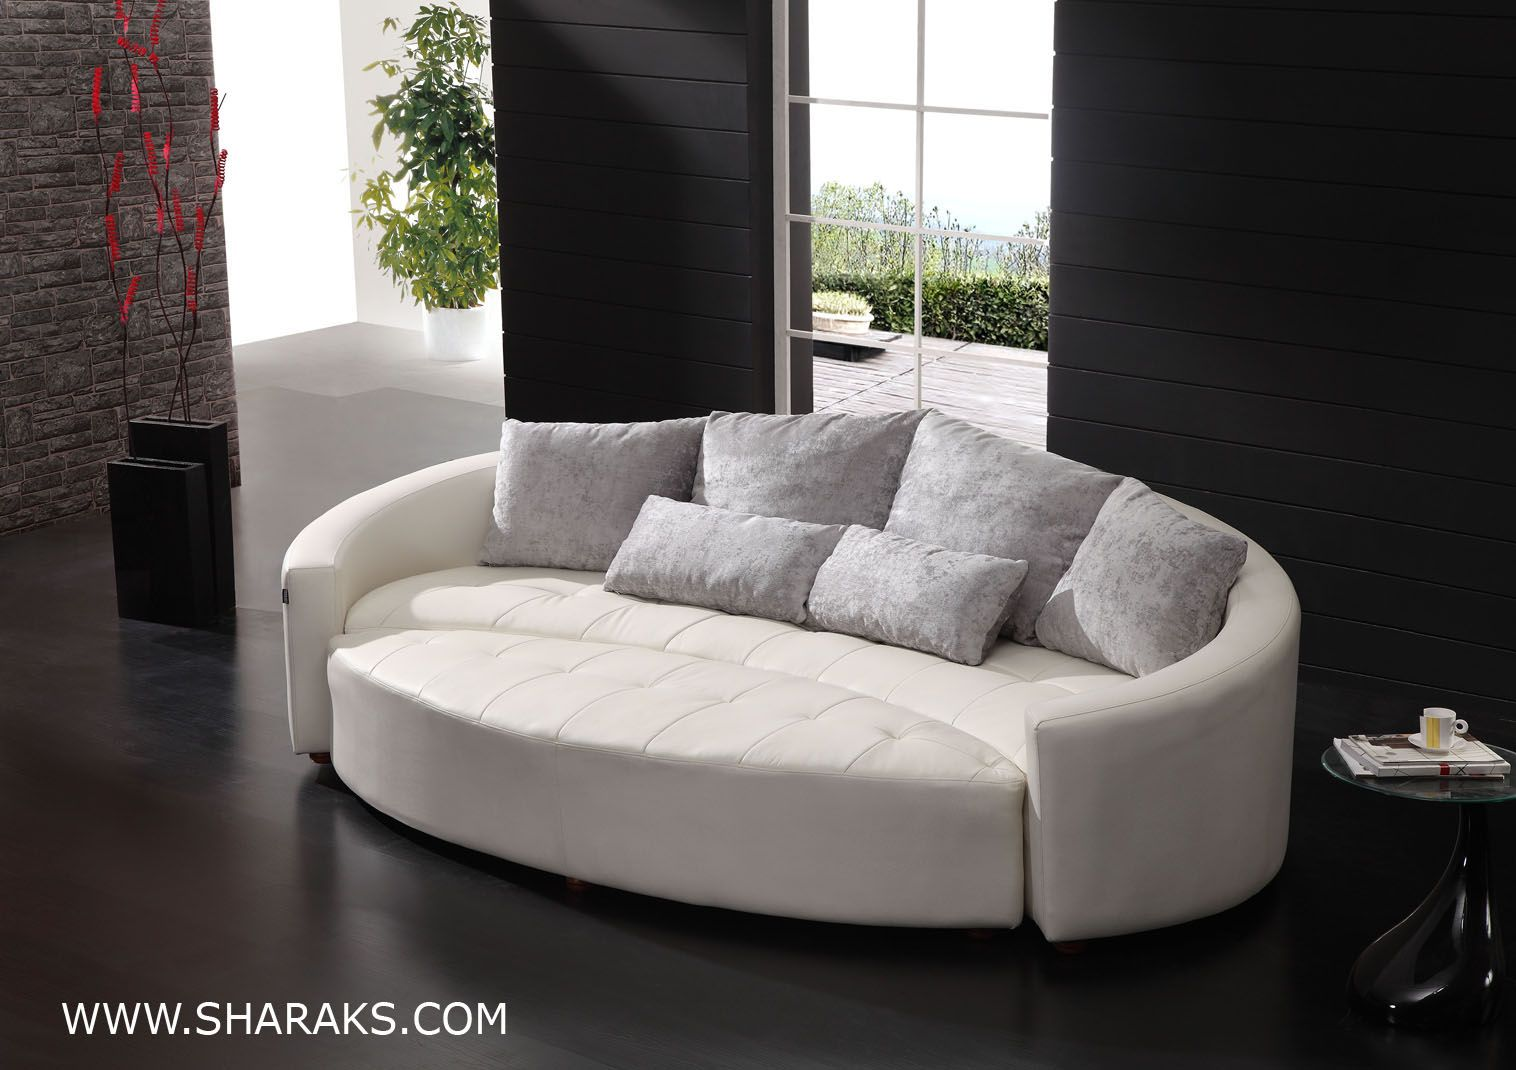 Beau Curved Sofas And Loveseats | Cornering The Curved Leather Sofas Market    Sharaks Blog